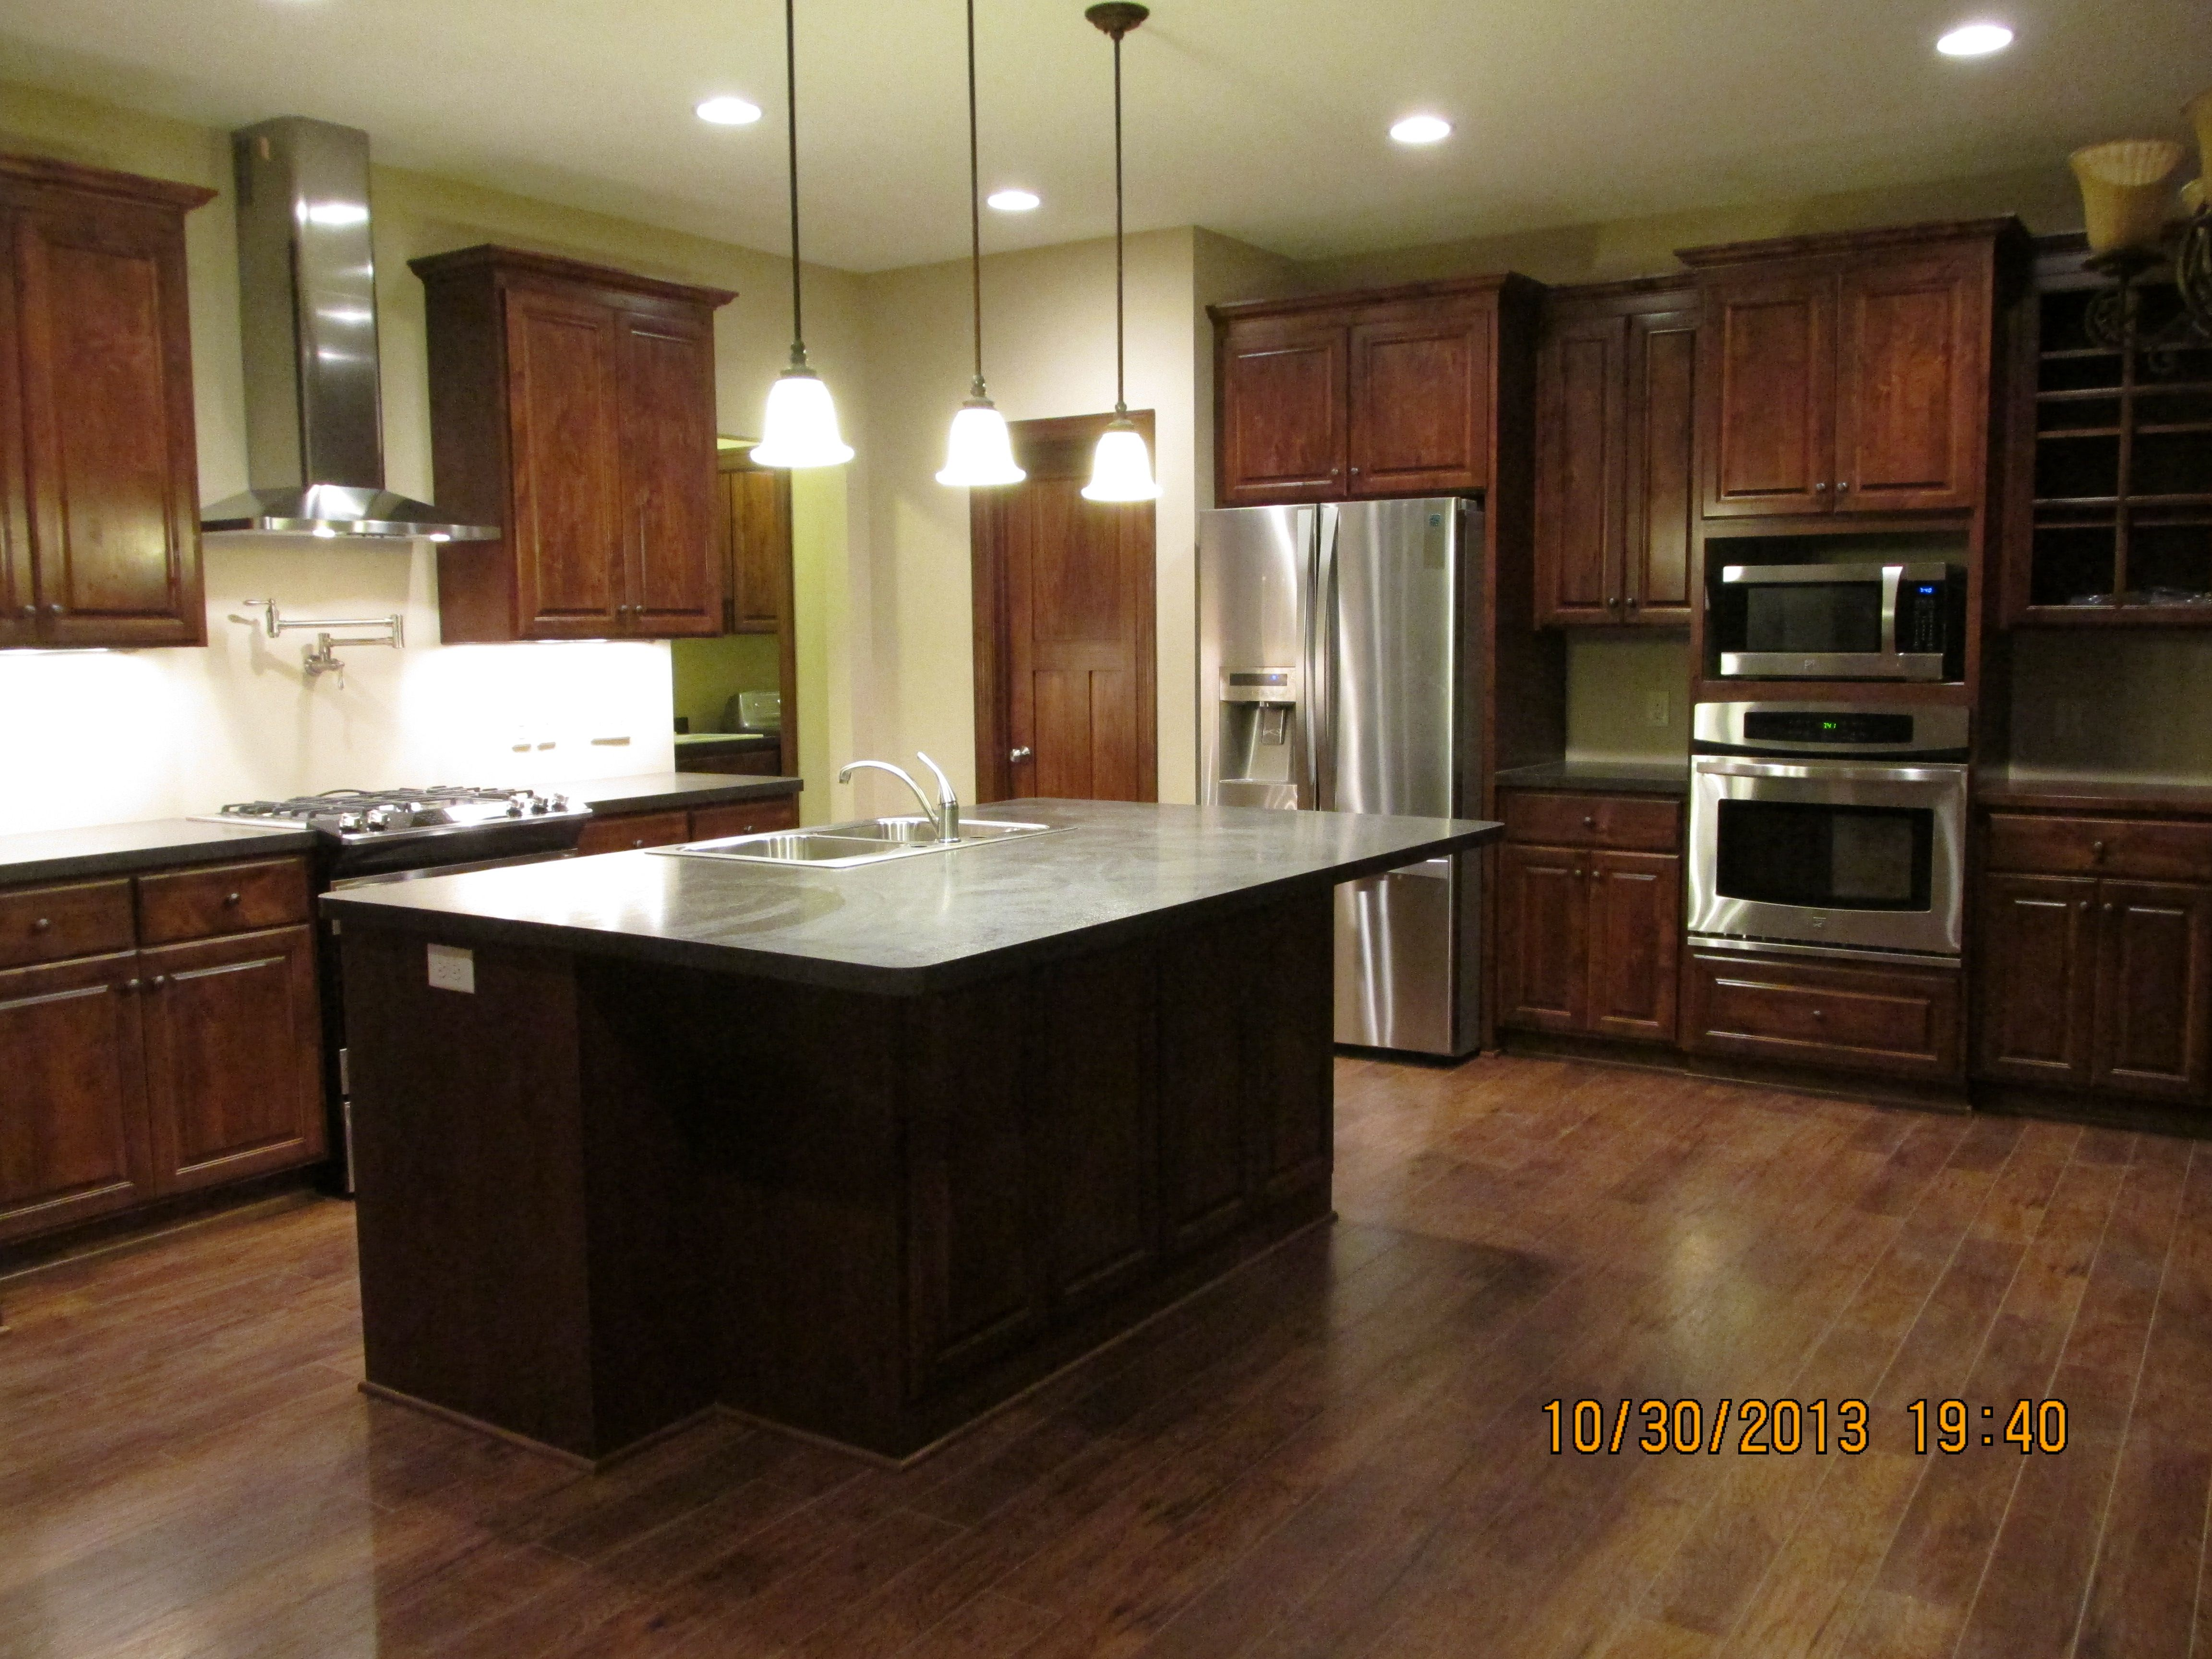 Coffee Color Kitchen Cabinets Knotty Alder Cabinets W Espresso Stain Popular Color